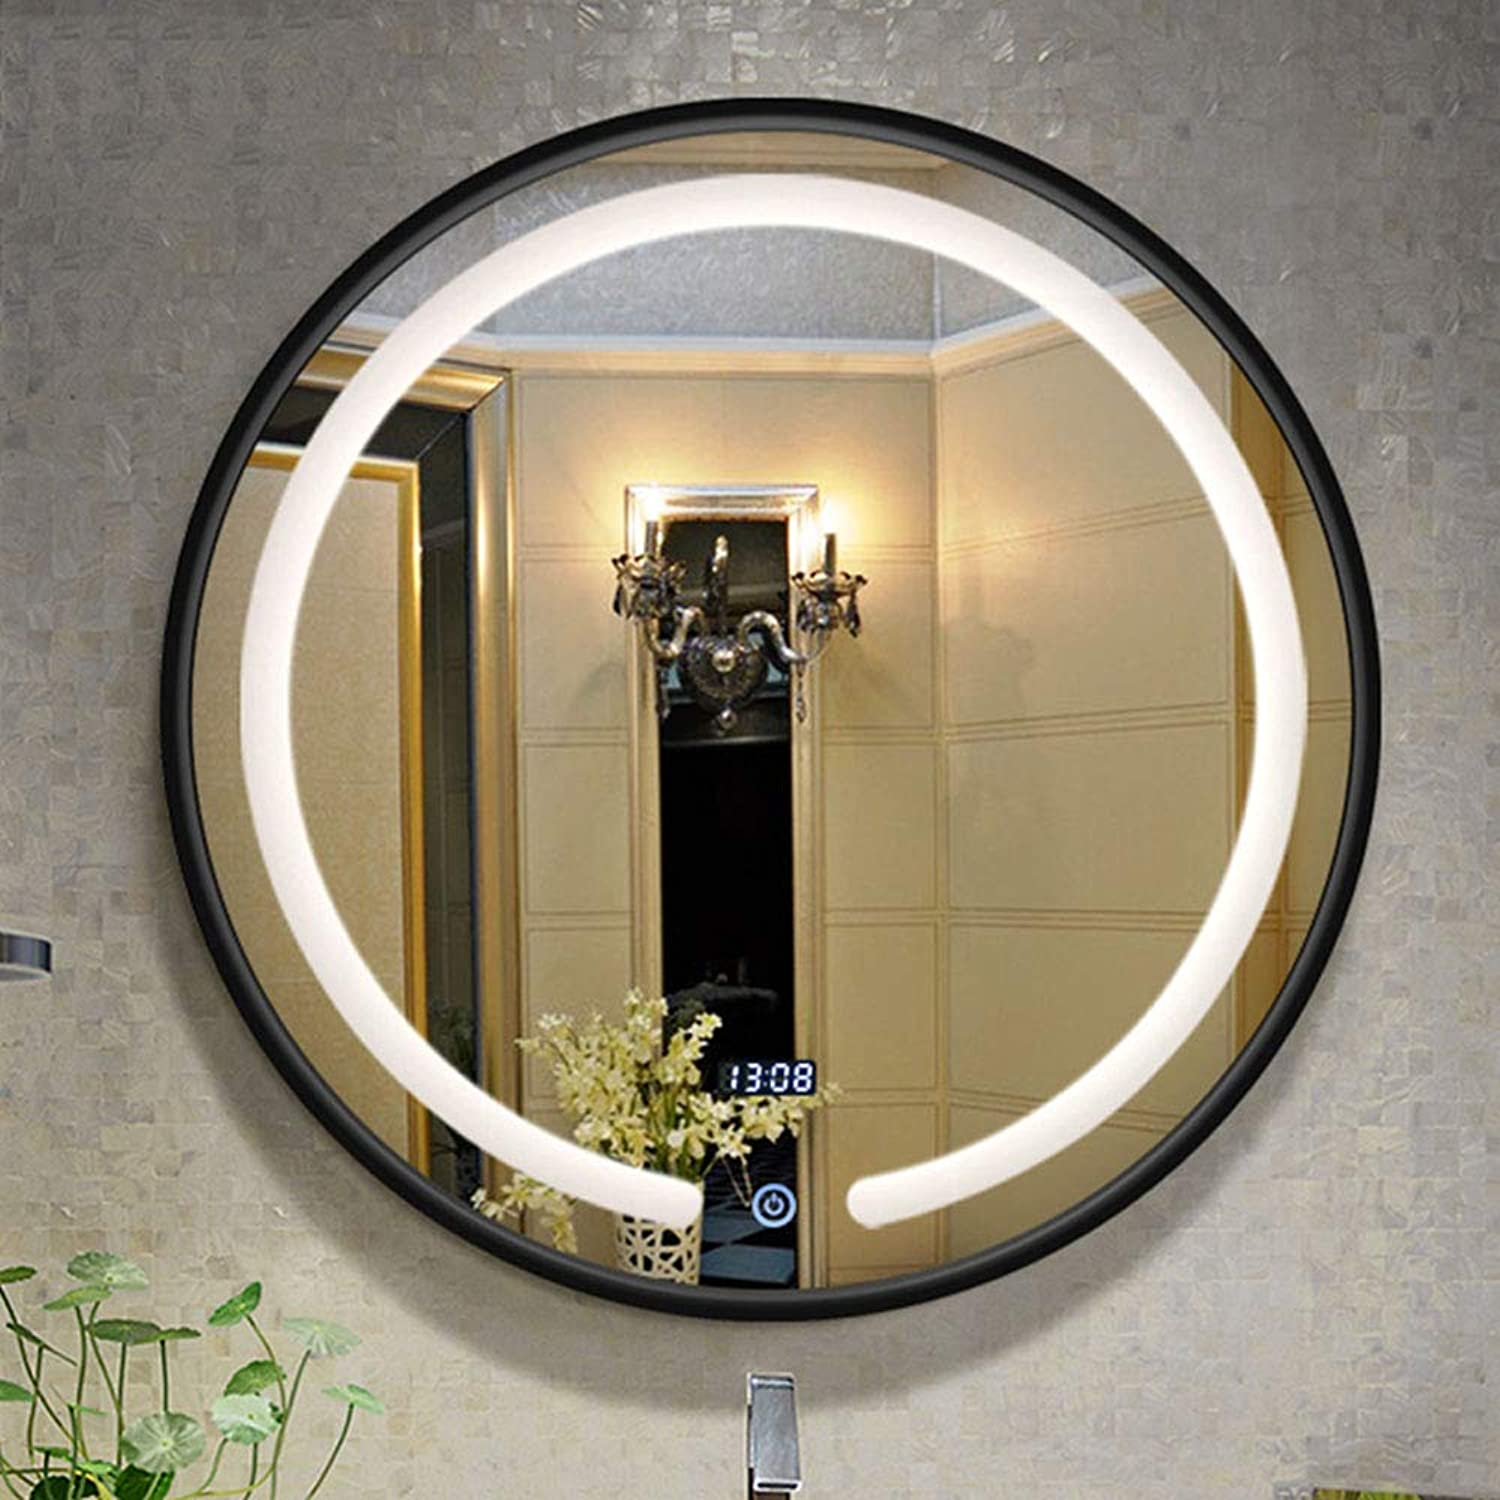 LED Illuminated bathroom mirror, Smart Touch Round Wall Mounted bathroom mirror, White Light Black Frame with time Display